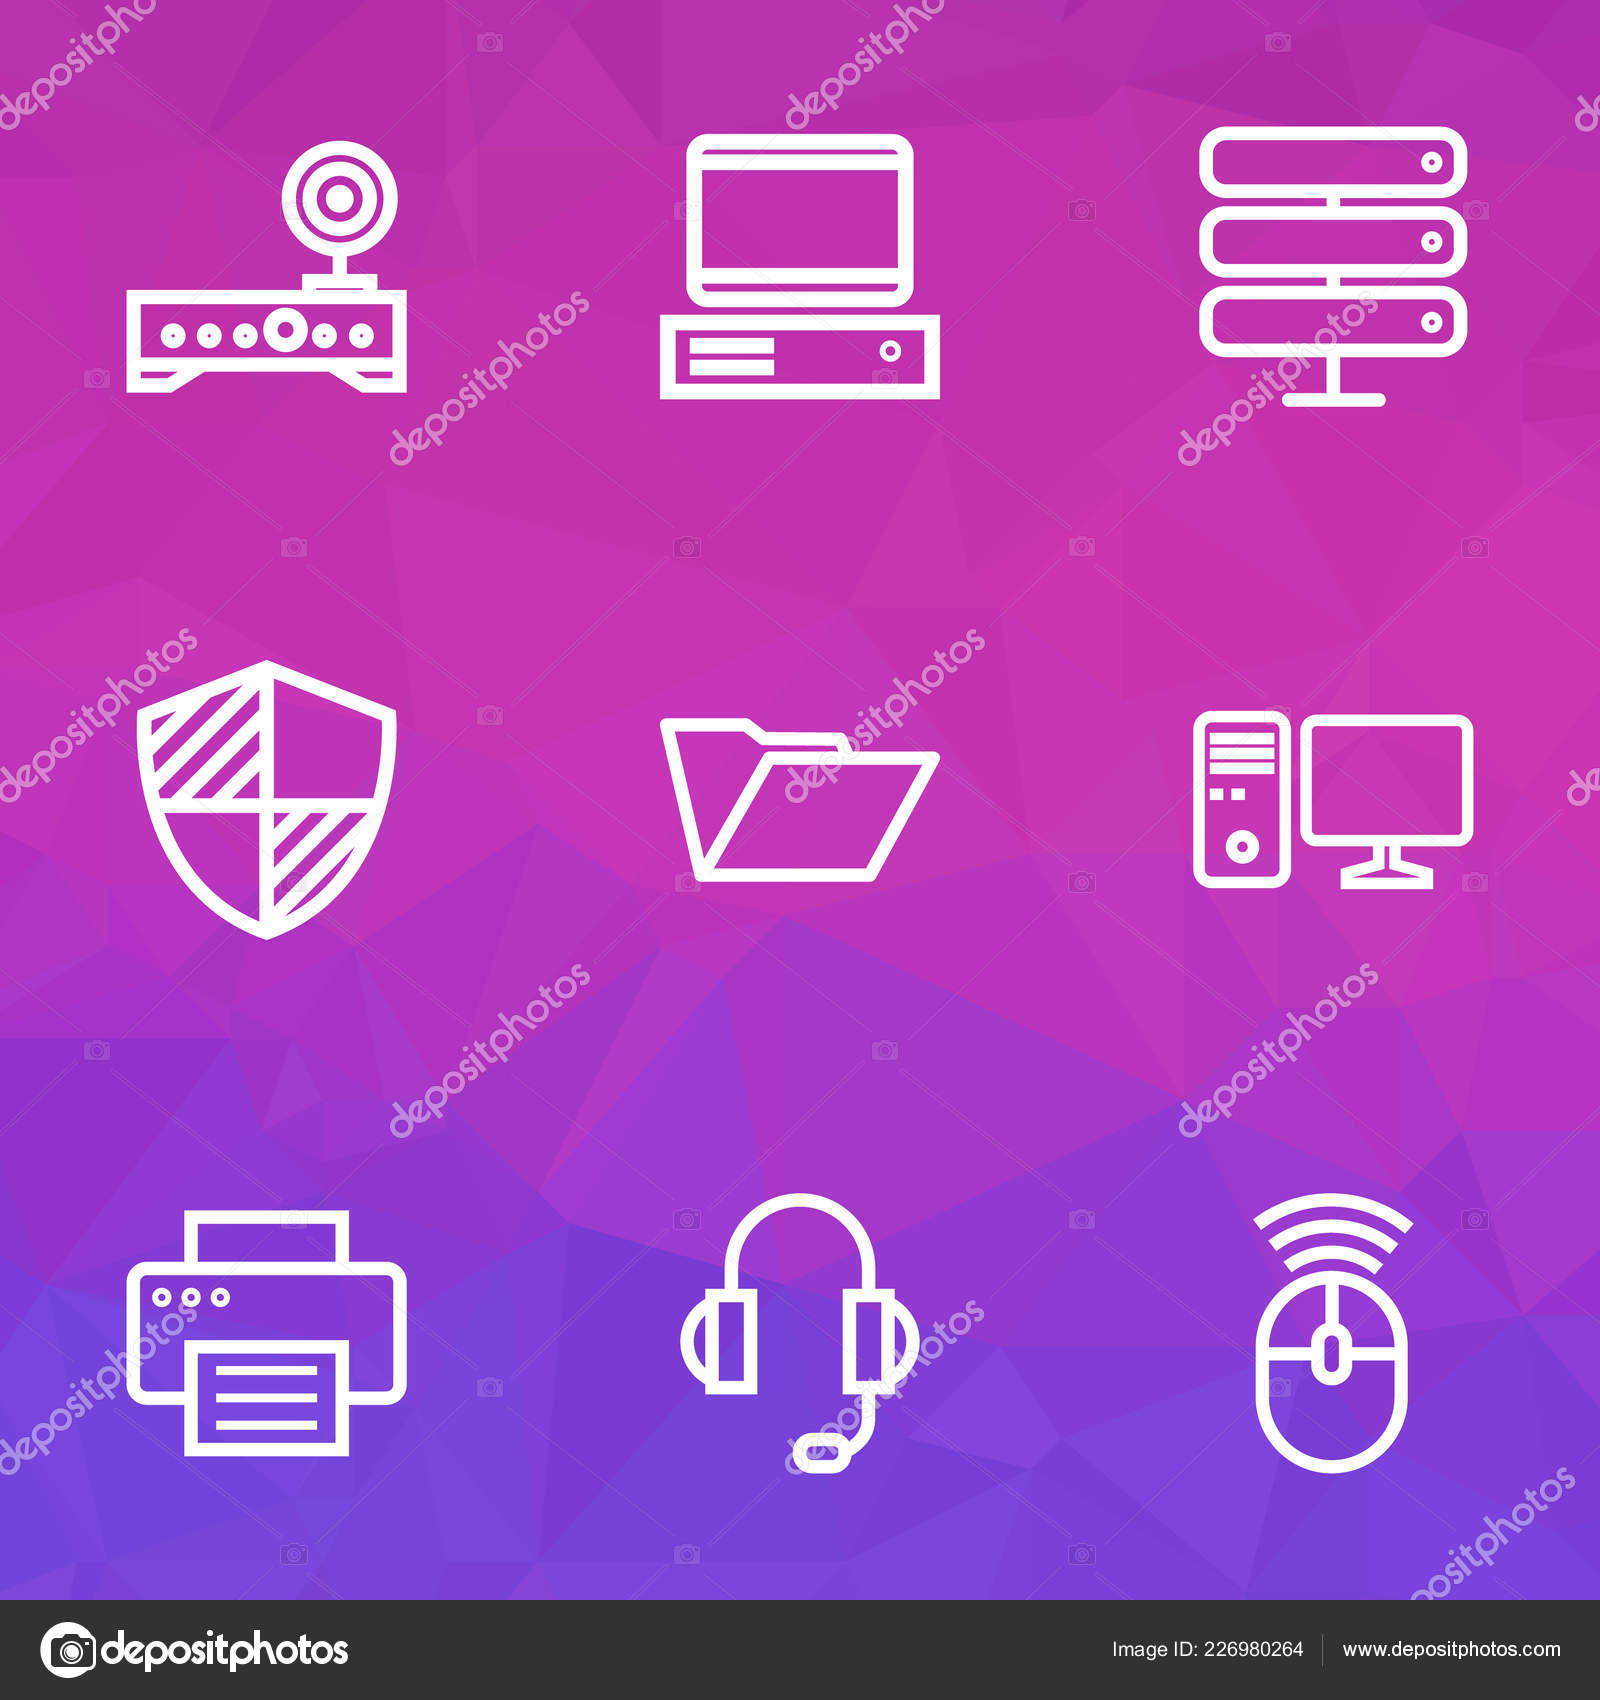 Hardware icons line style set with router, mouse, PC and